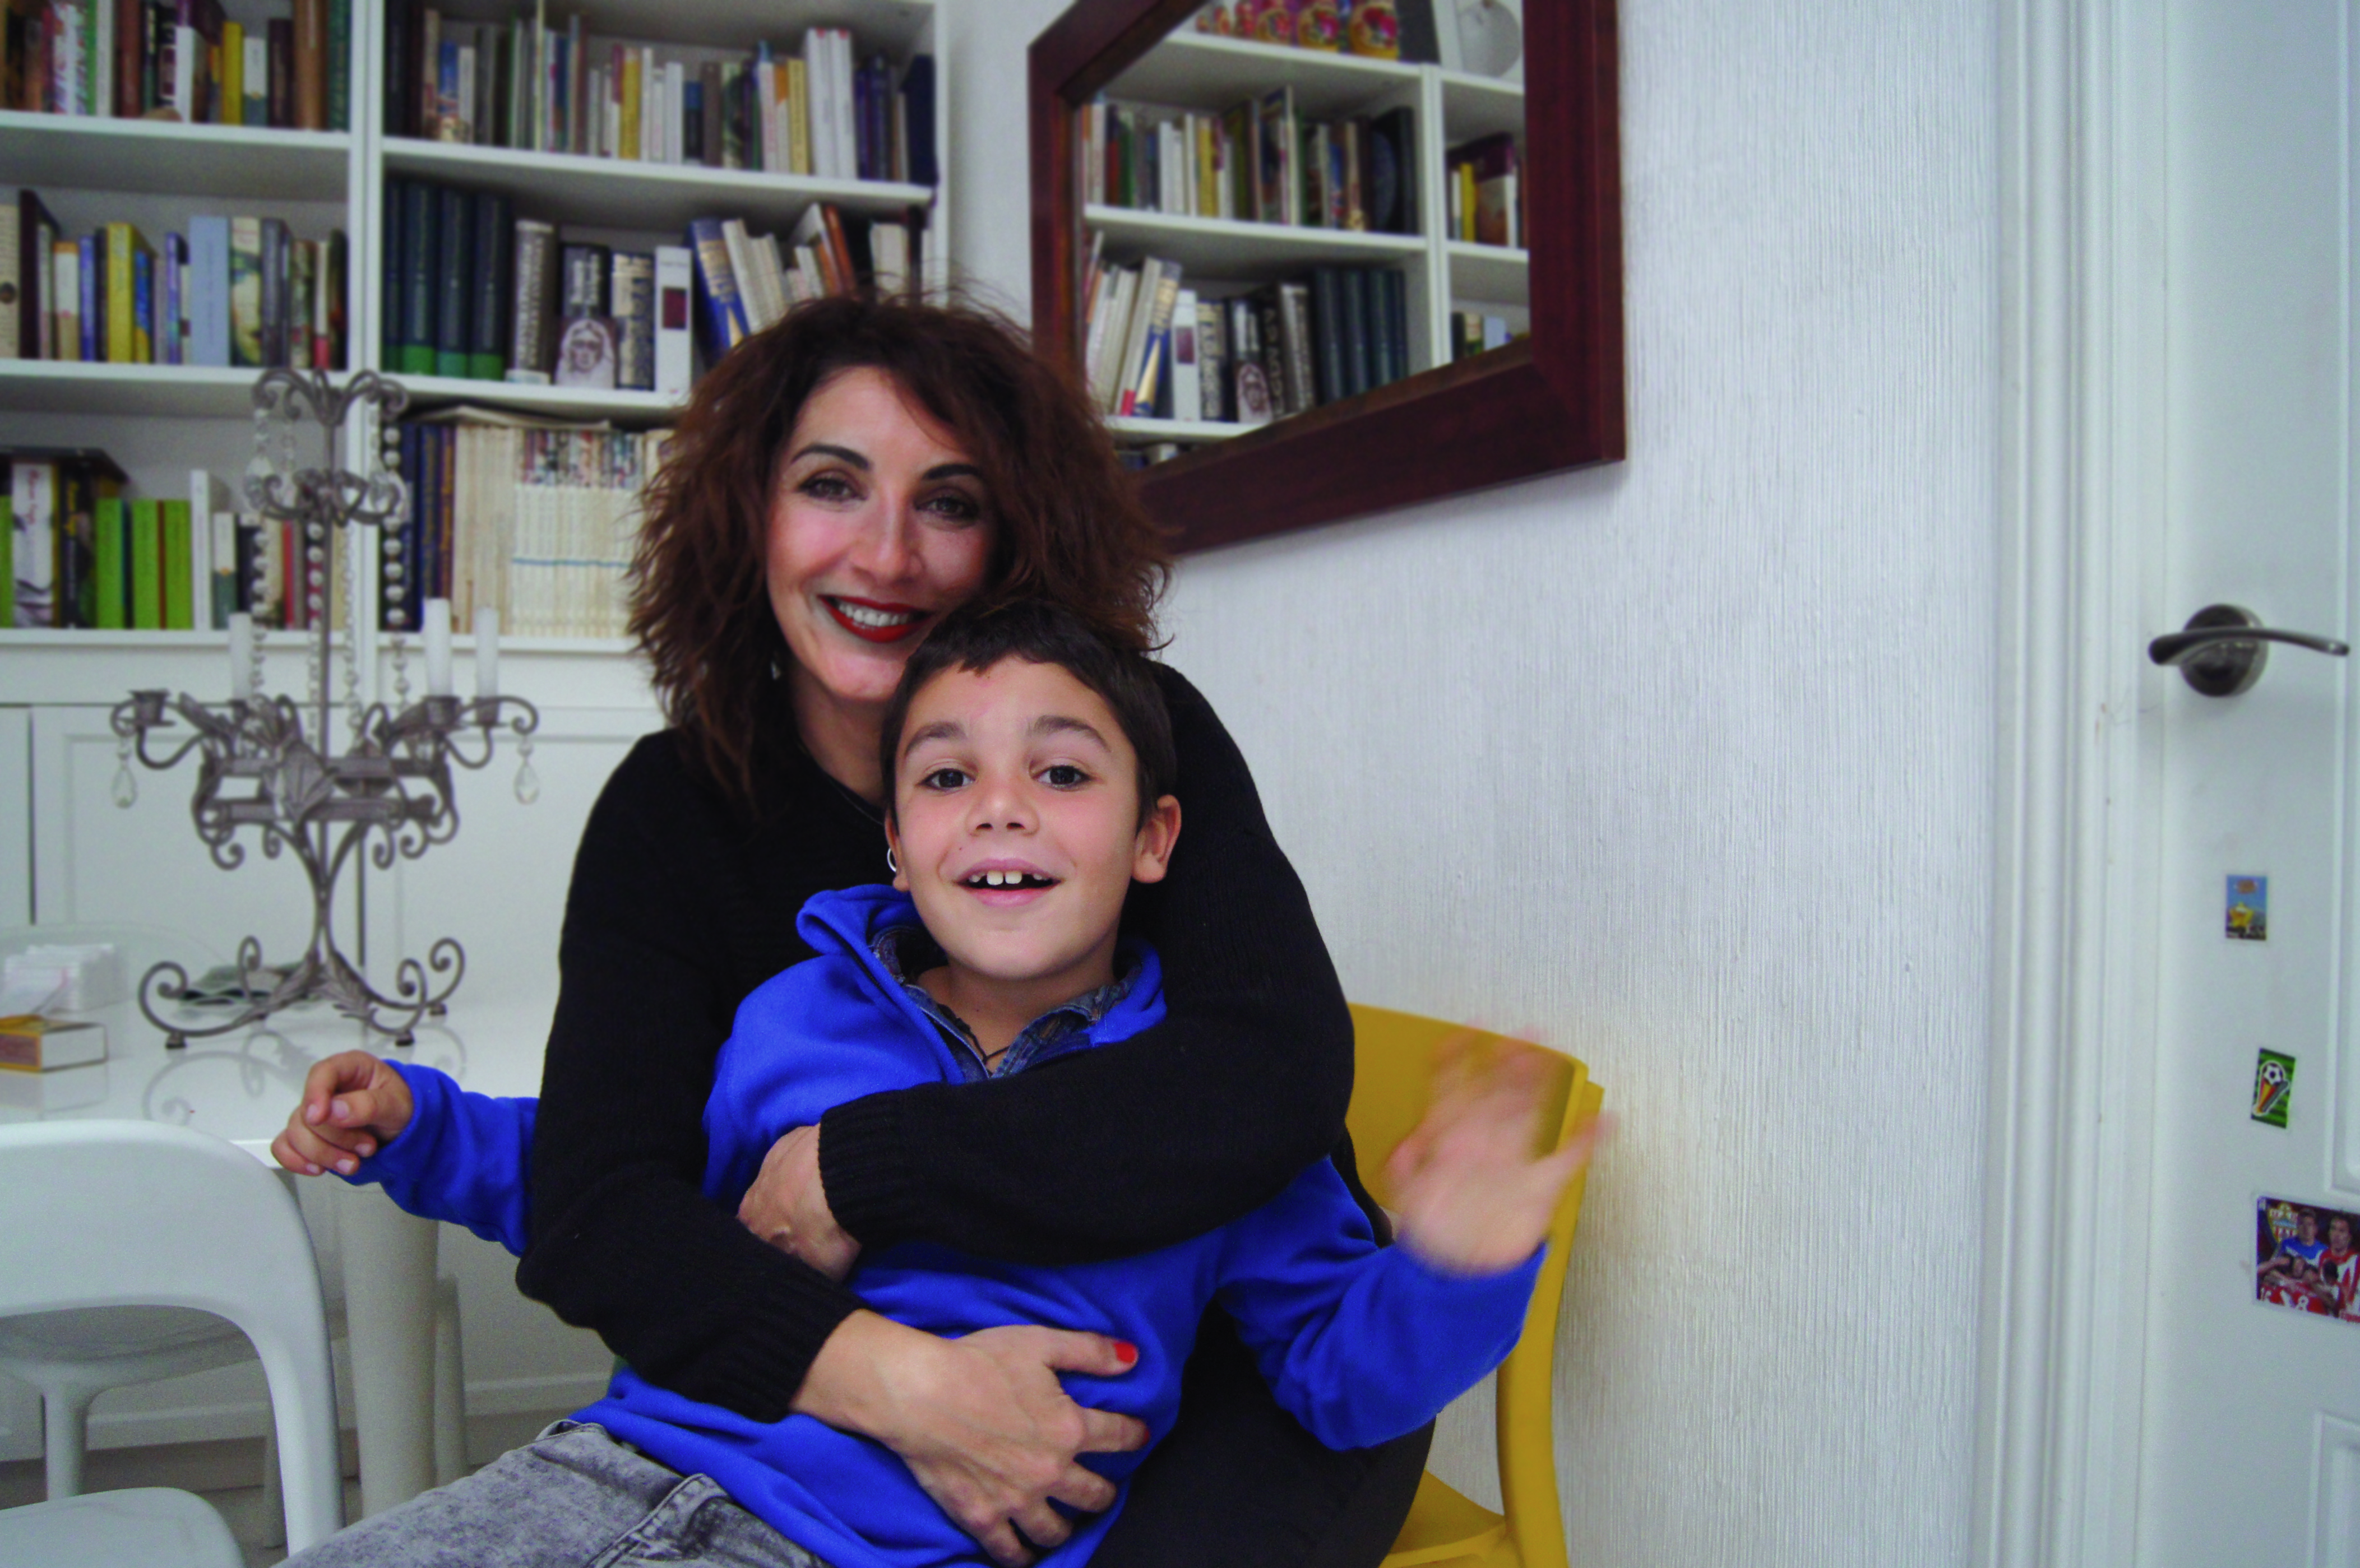 Patricia with her son Alfonso / MADISON CAMERON